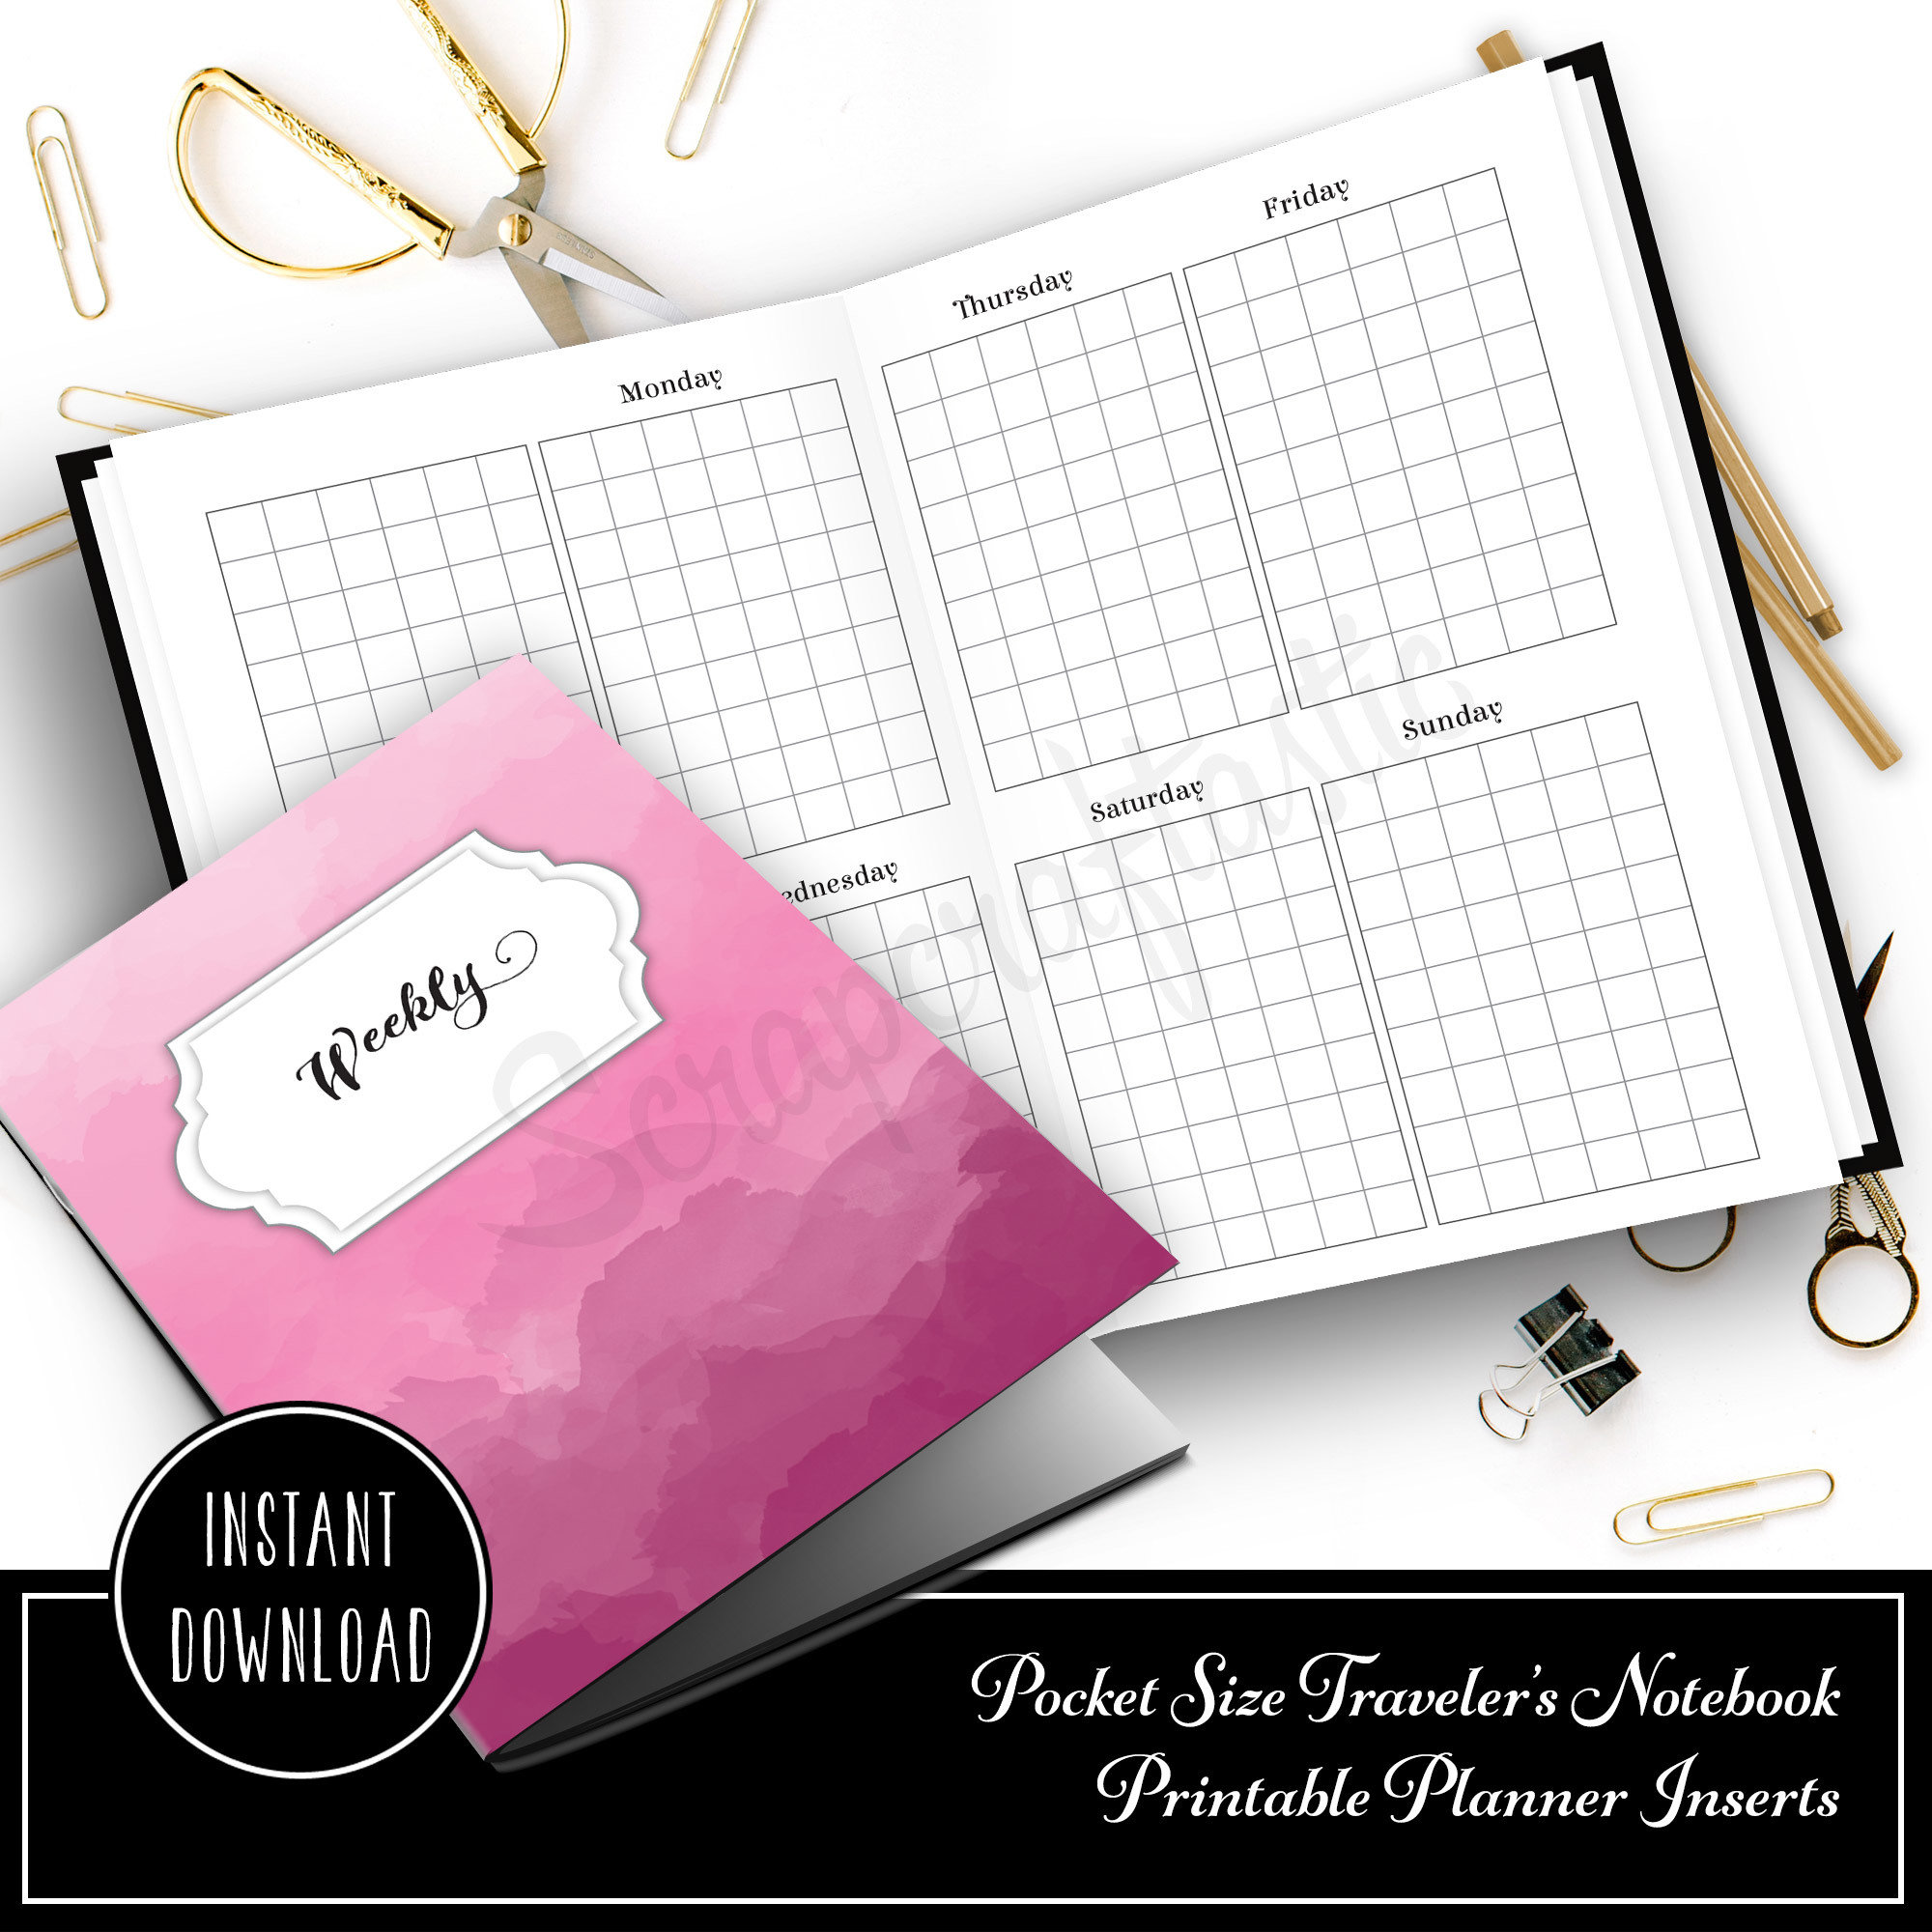 Full Month Notebook: Week on Two Pages Vertical Grid Undated Pocket Traveler's Notebook Printable Insert 10015